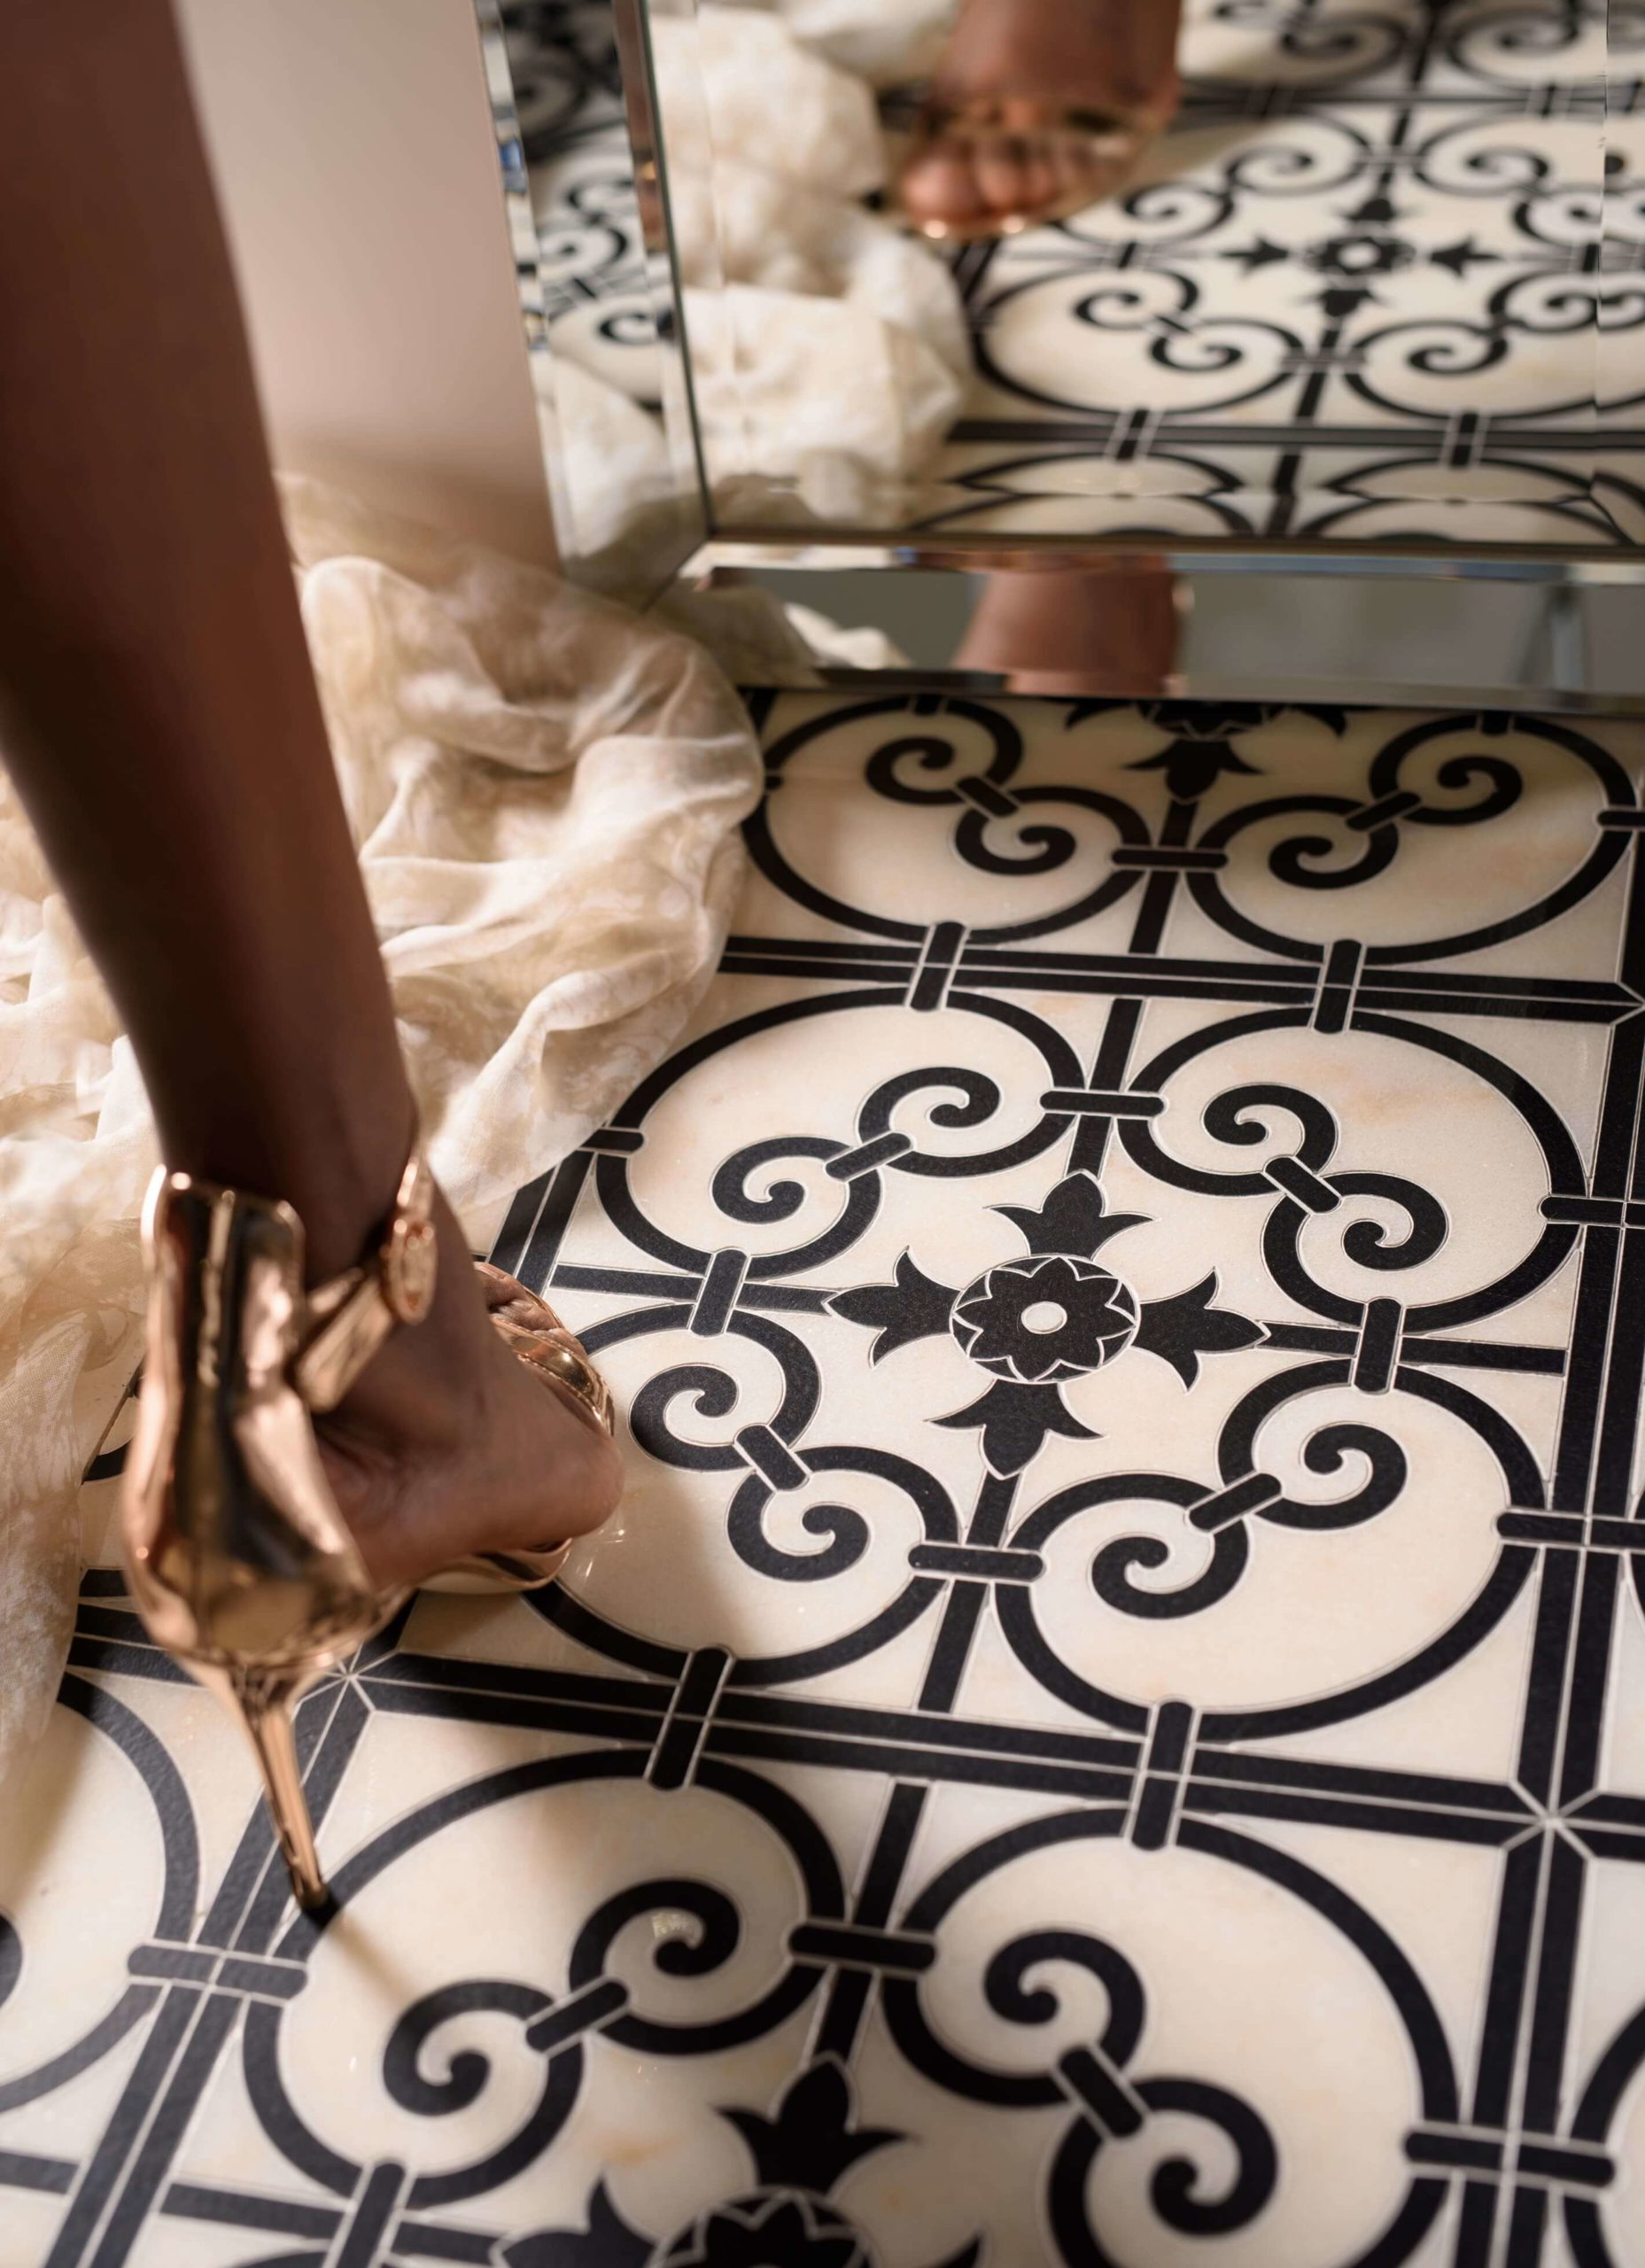 Mosaique Surface: The Most Luxury Mosaics & Tiles Ever?